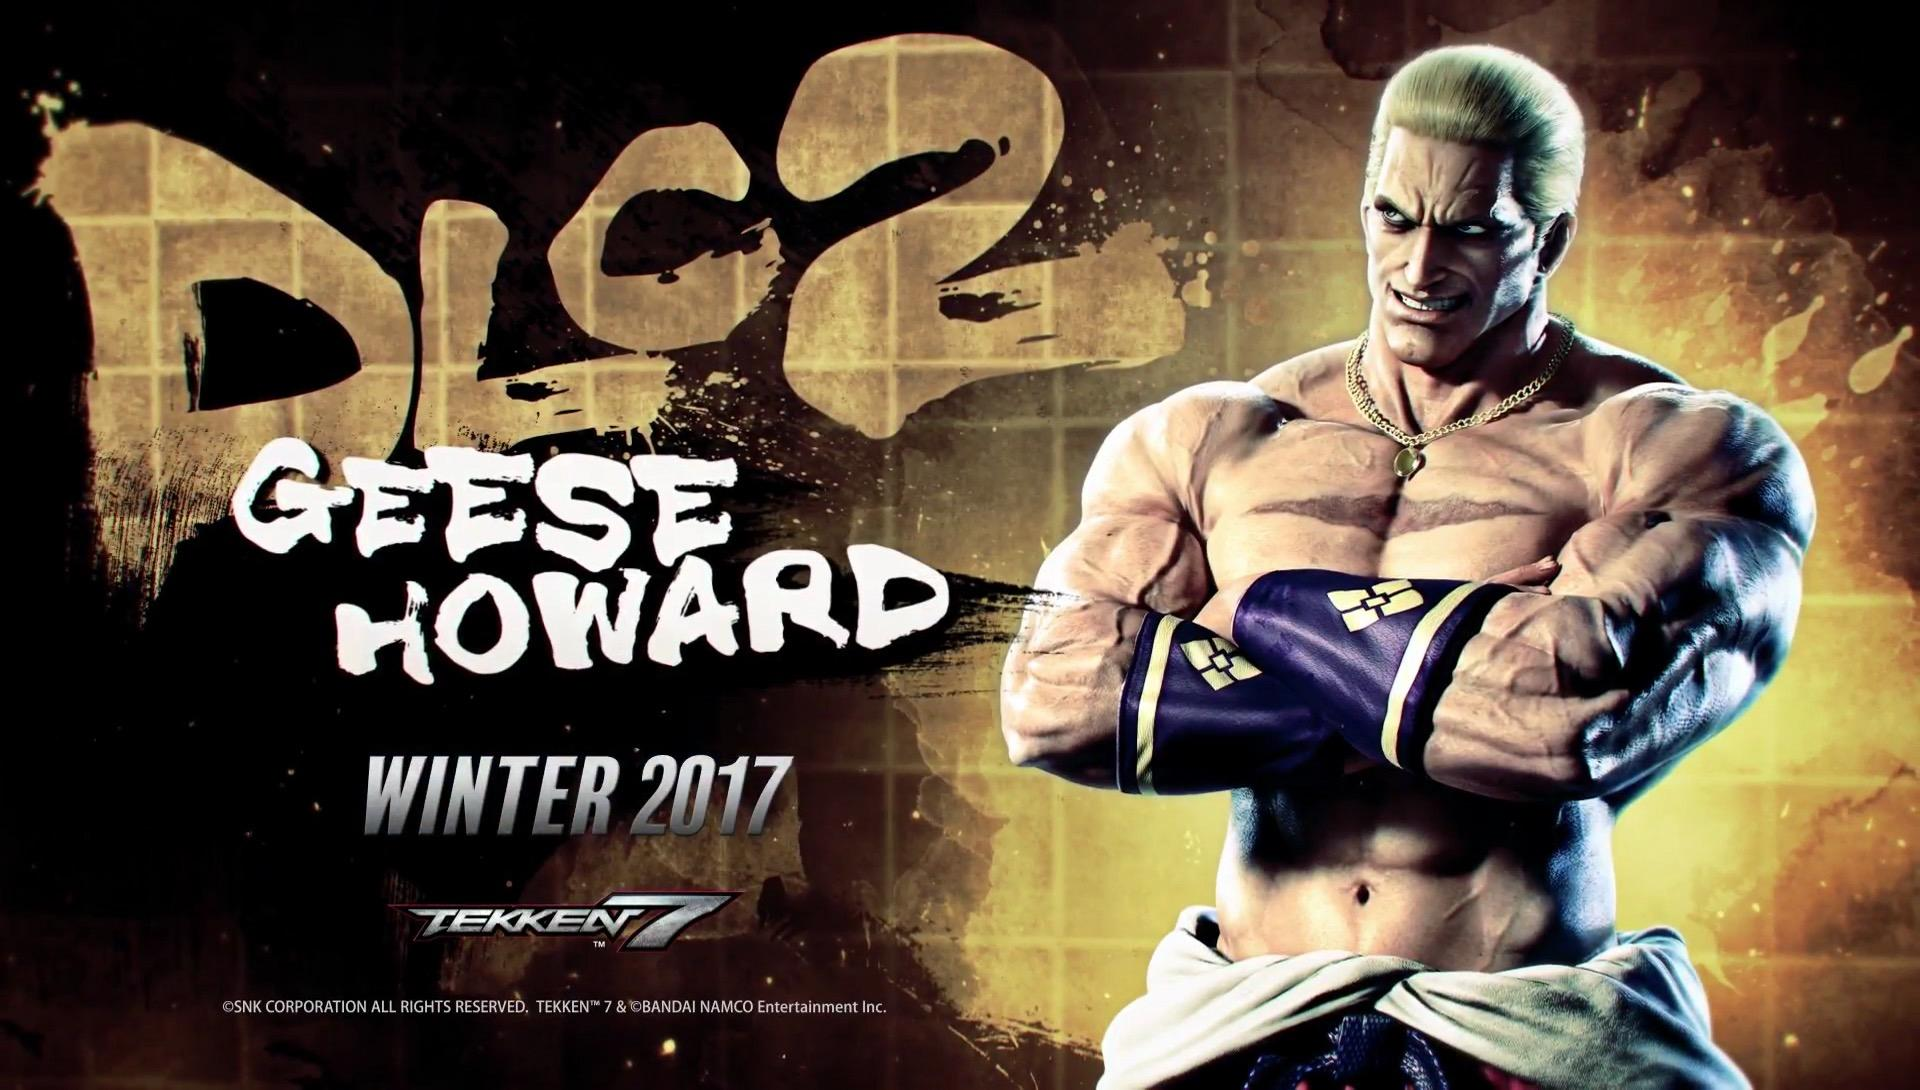 Tekken 7 Geese Howard Gameplay Trailer